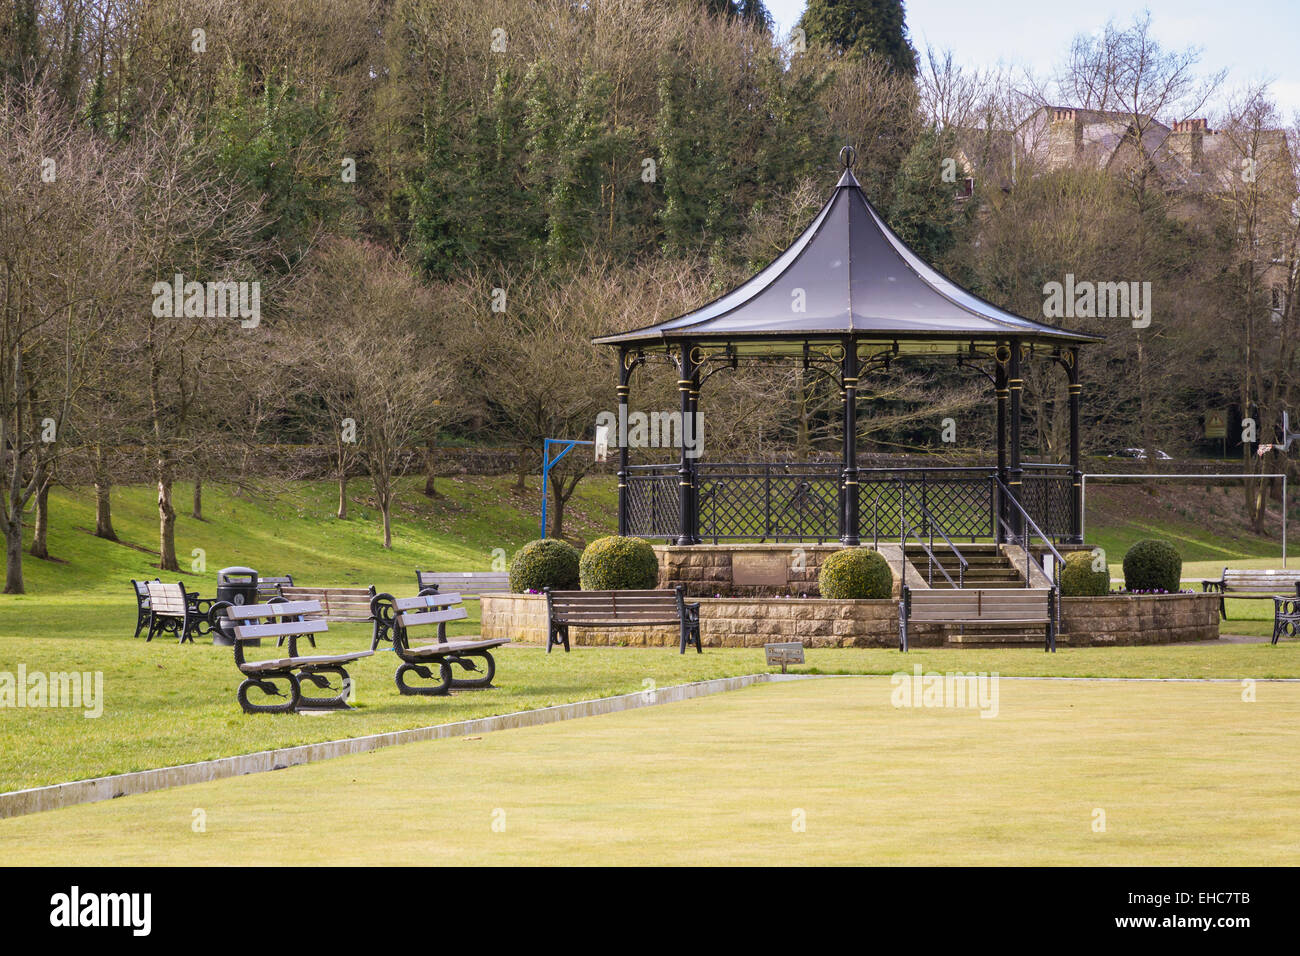 Bandstand at the Recreation Ground in Pateley Bridge, Yorkshire. - Stock Image